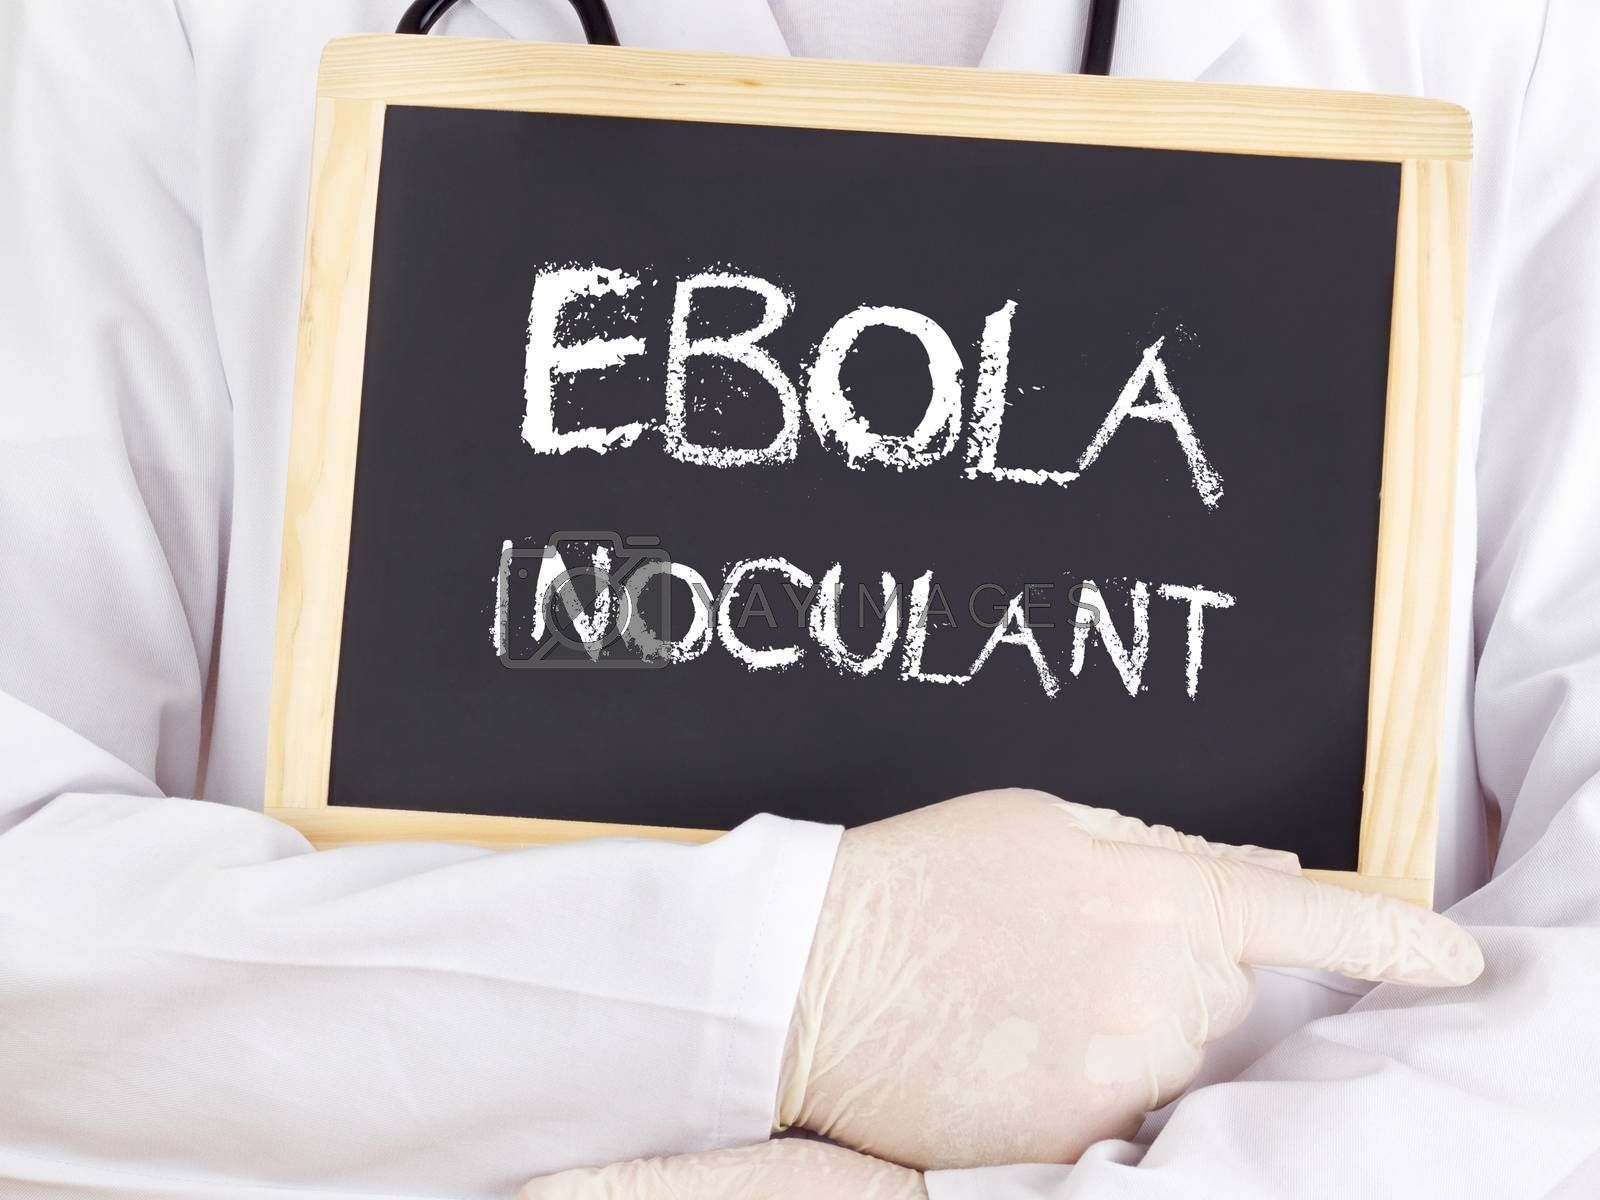 Doctor shows information: Ebola inoculant